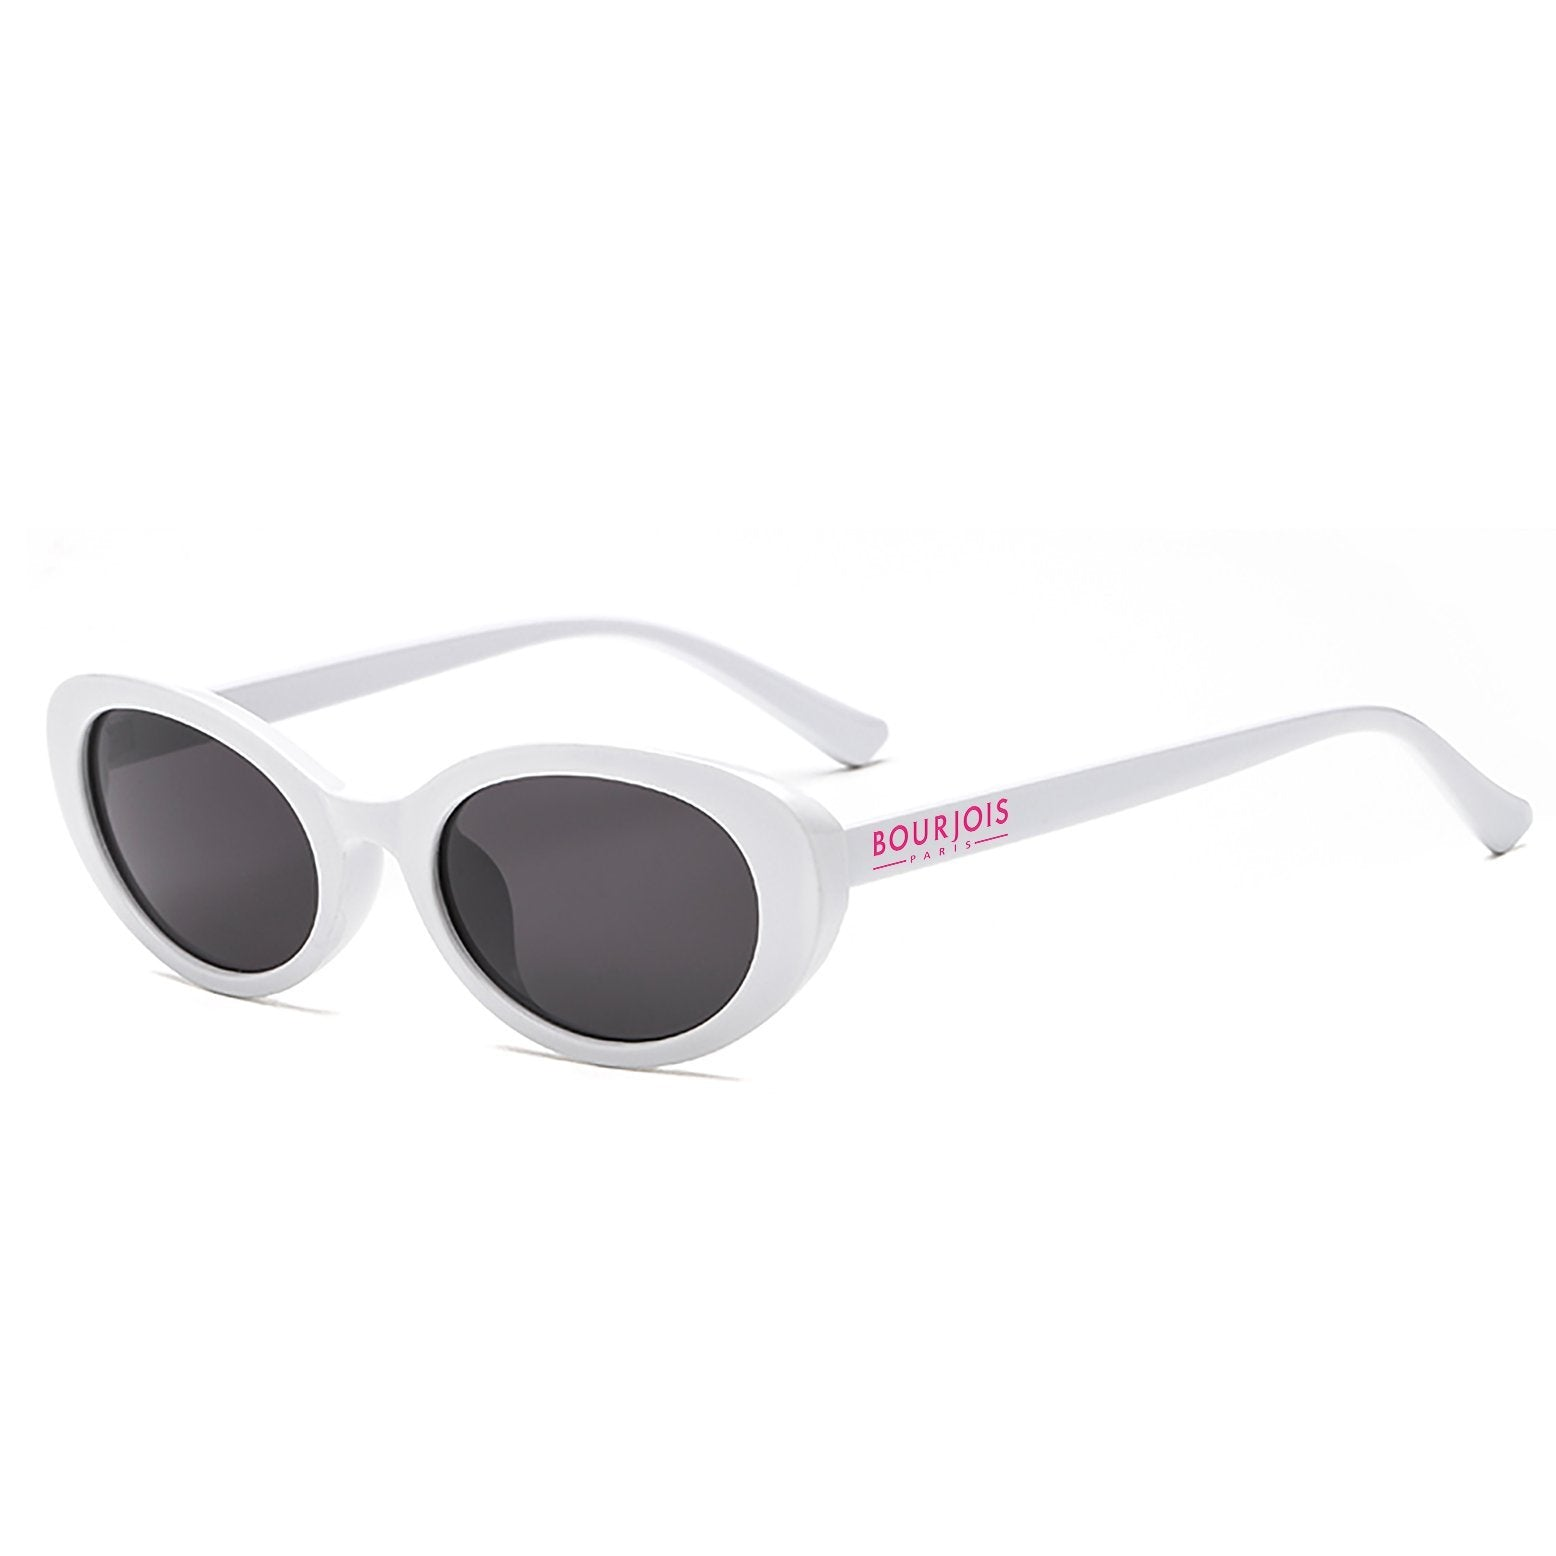 CLOUT - Fashion Promotional Sunglasses